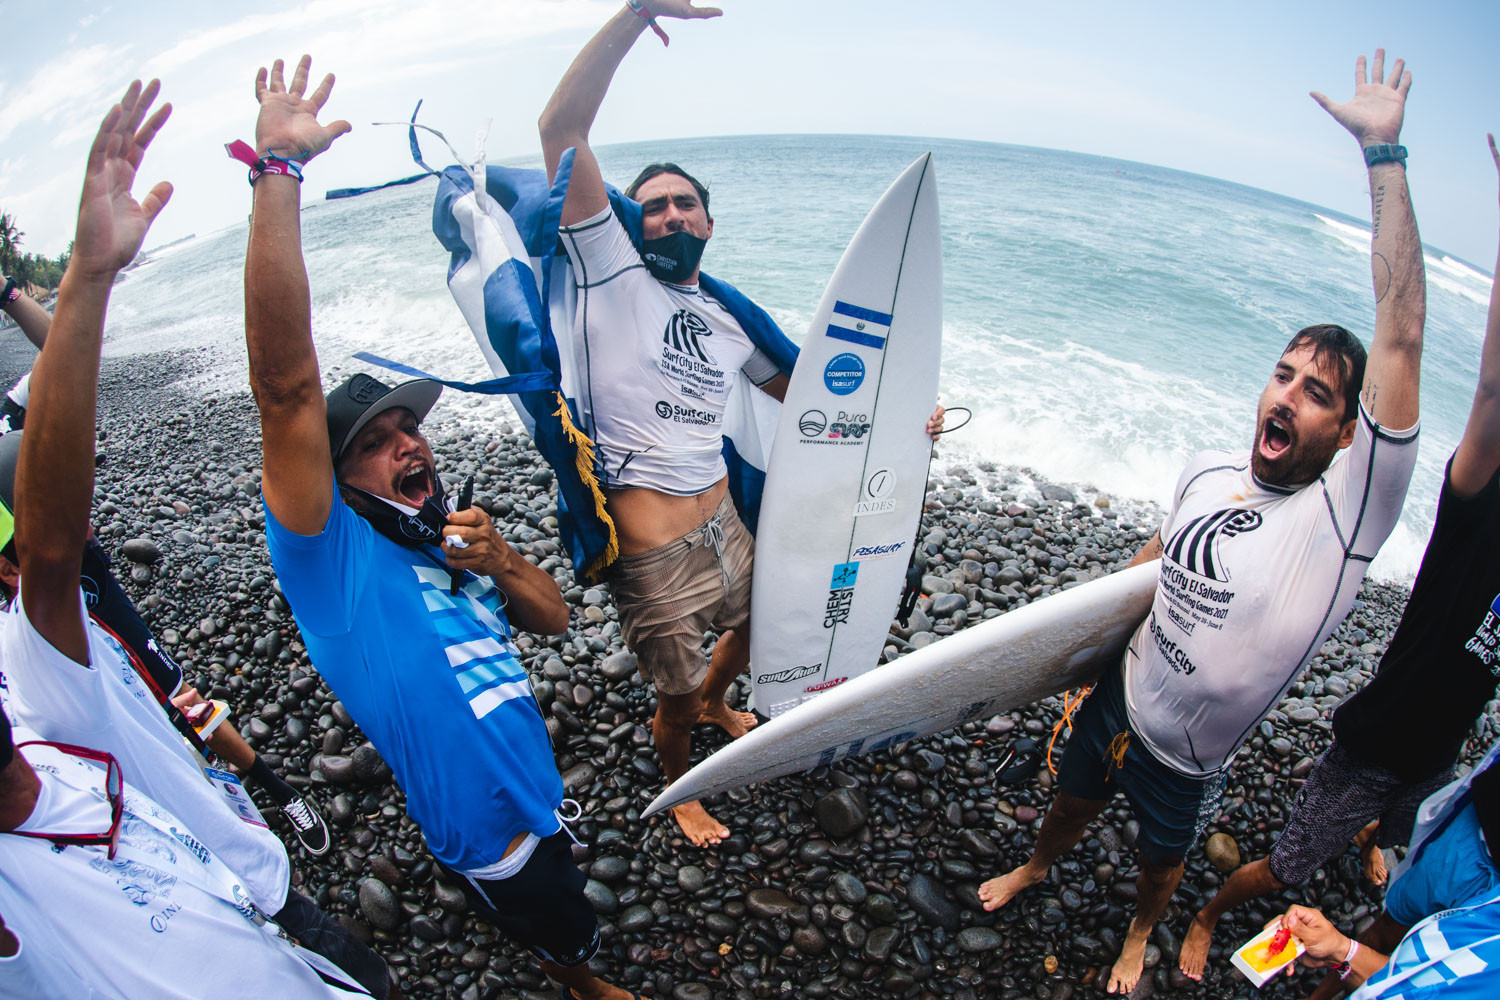 Surfers continue quests for golds and Tokyo 2020 places on sixth day of ISA World Surfing Games